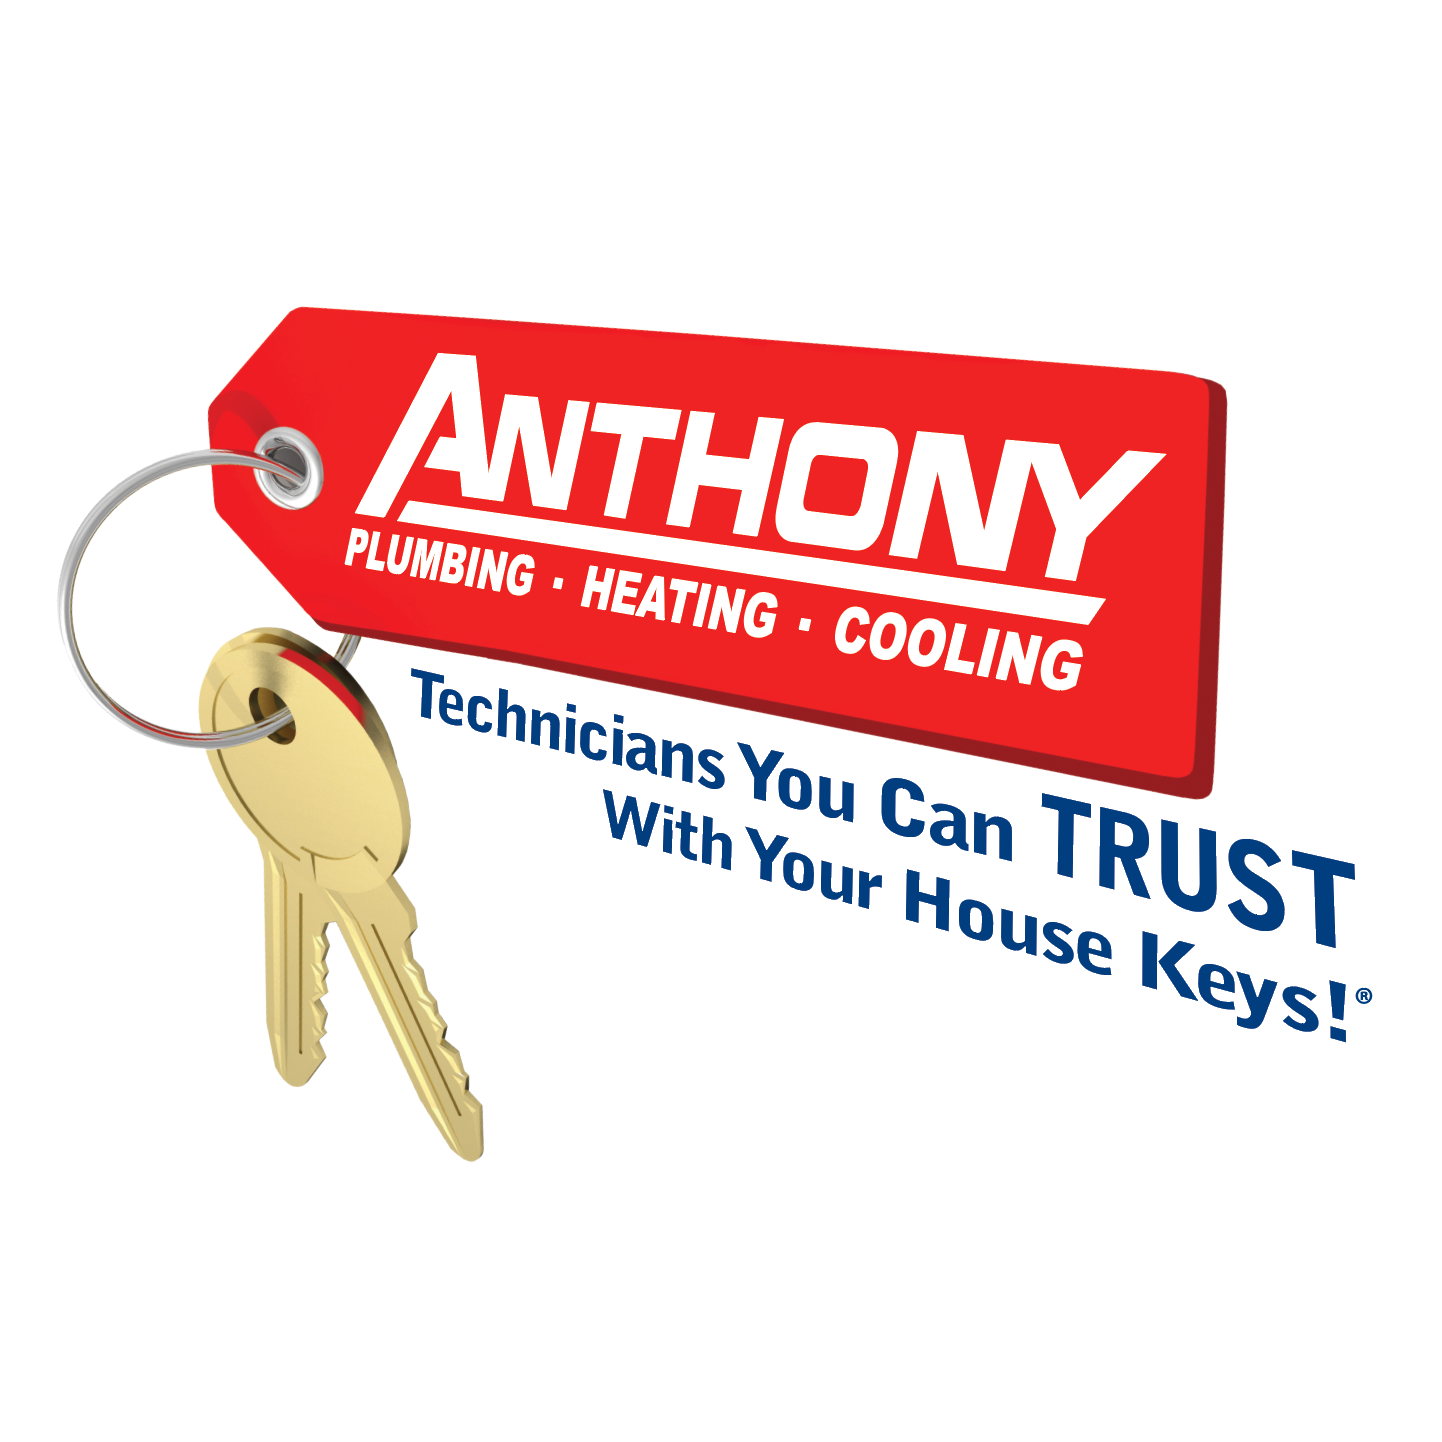 image of Anthony Plumbing, Heating & Cooling